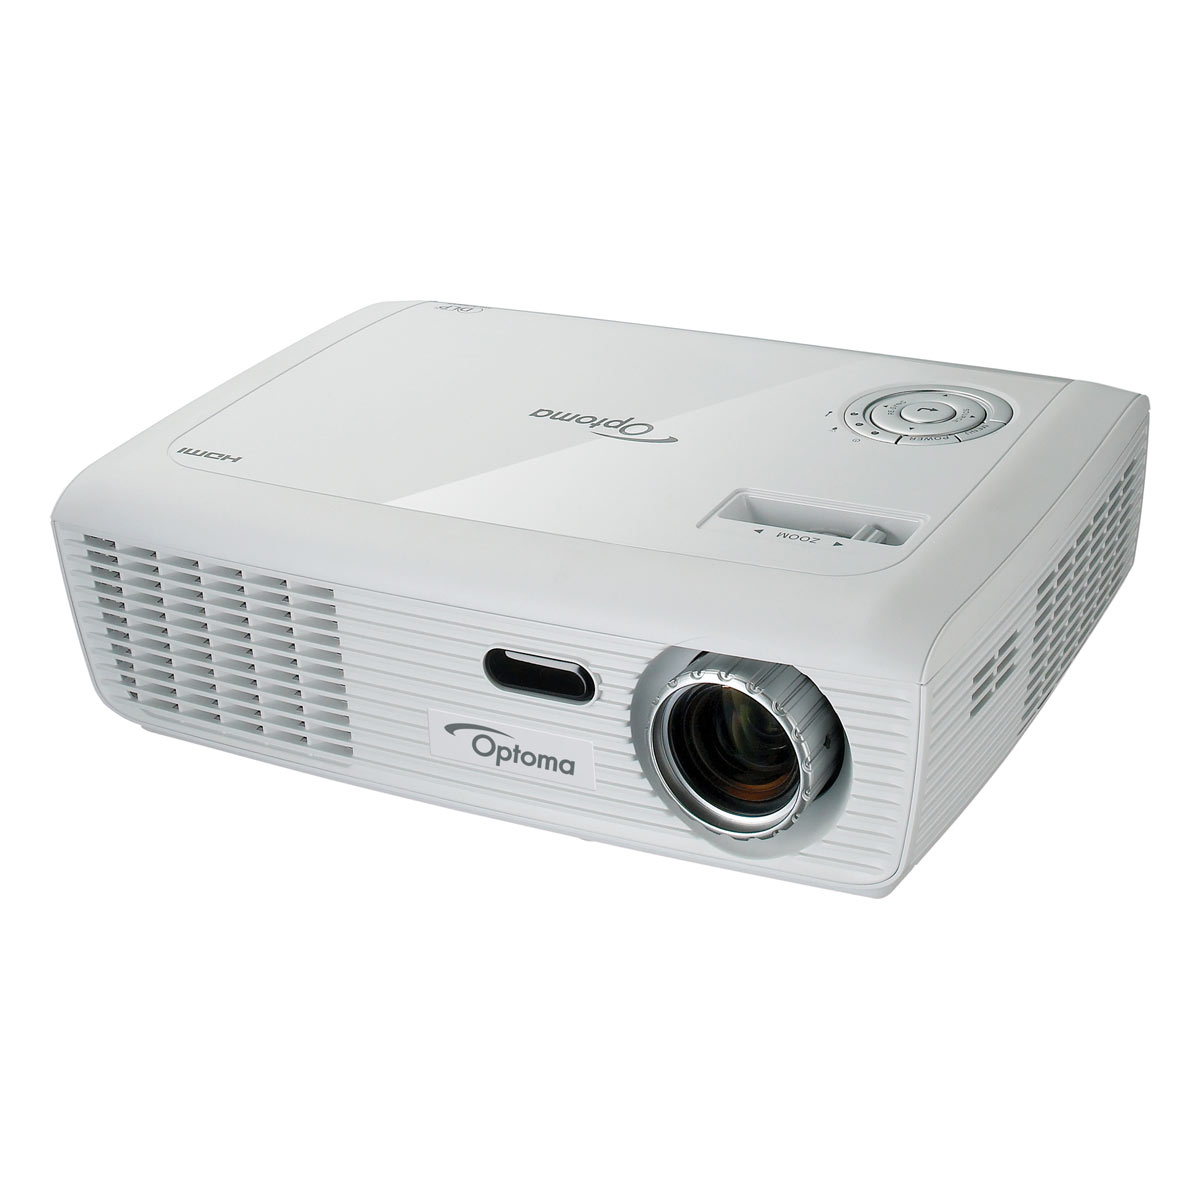 Optoma hd6720 vid oprojecteur optoma sur - Support plafond videoprojecteur optoma ...